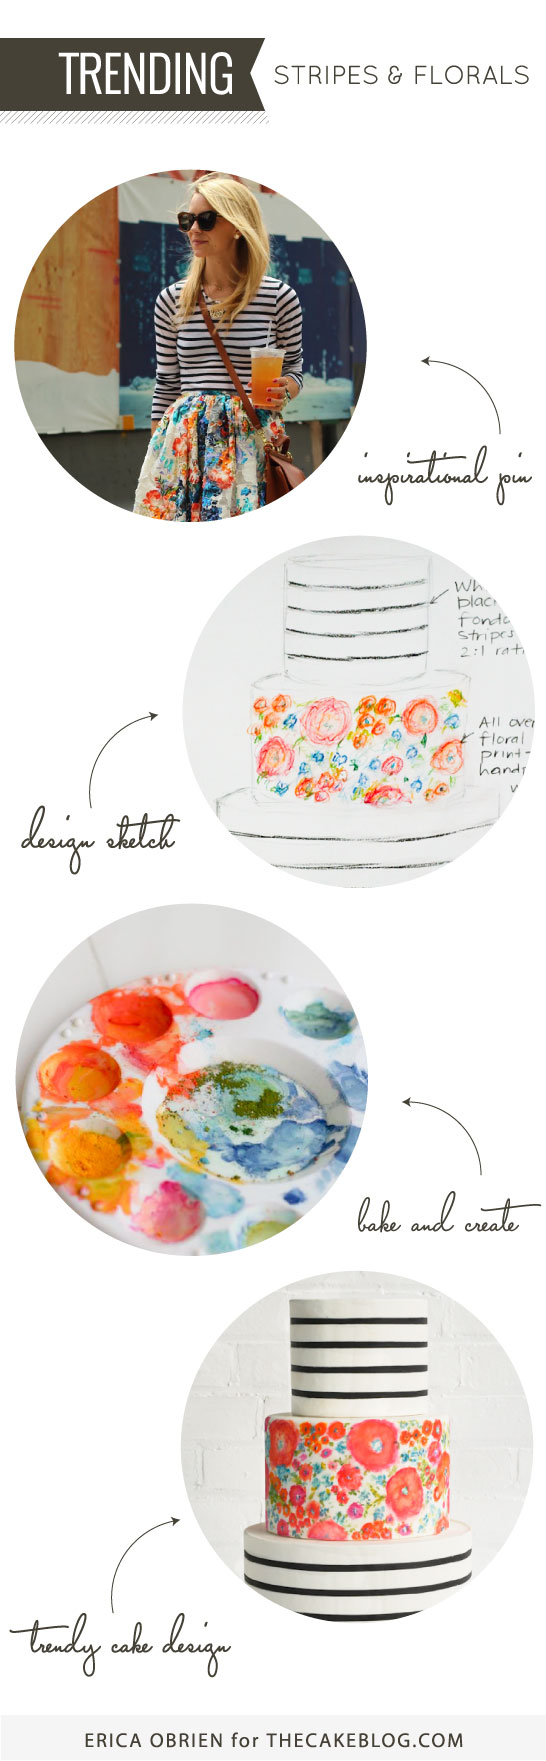 Stripes & Florals | Translating Trends into Cake Designs | Erica OBrien for TheCakBlog.com